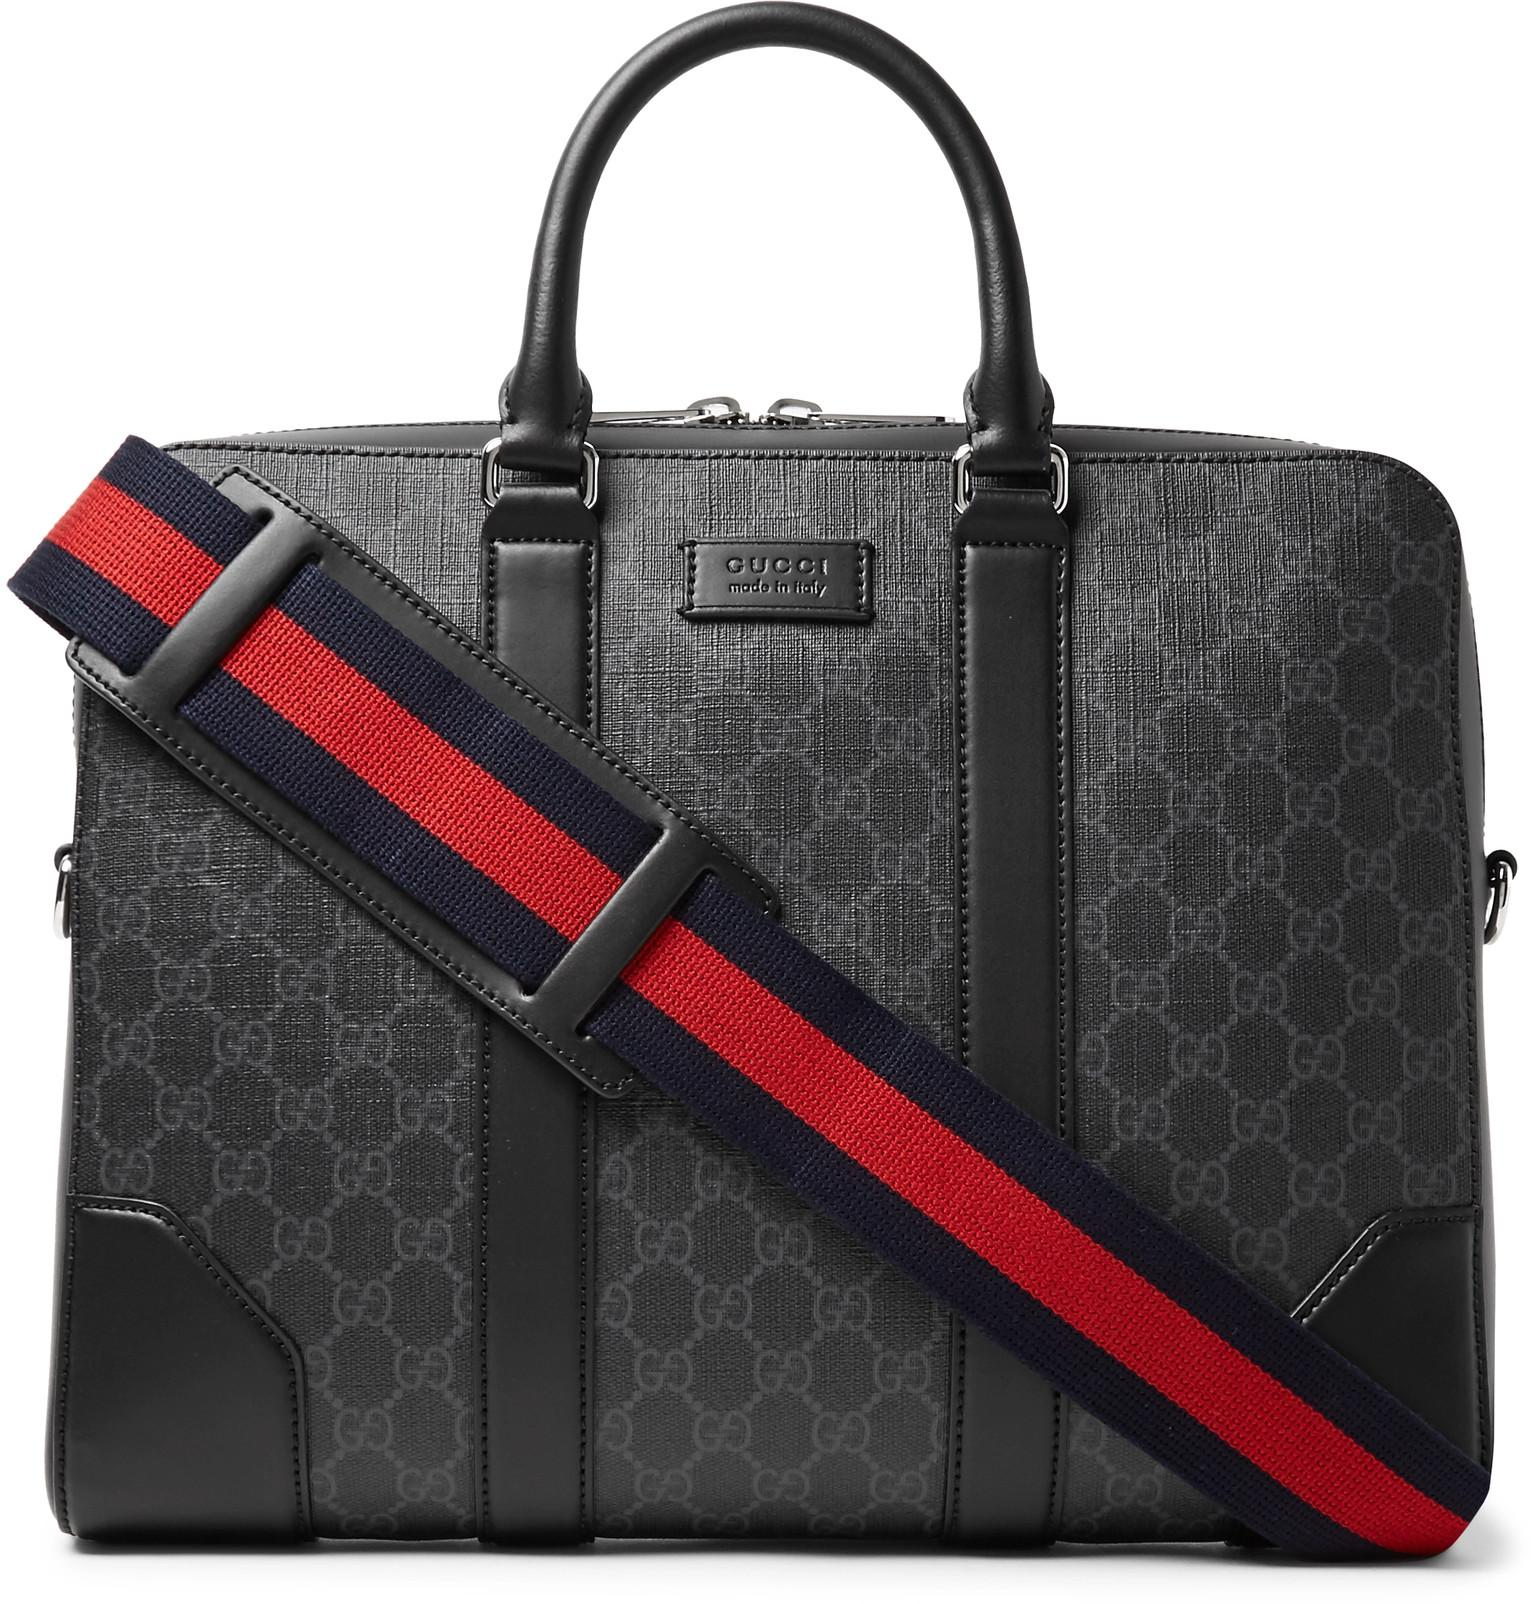 b0f9b9db6cbe82 Gucci. Men's Black Leather-trimmed Monogrammed Coated-canvas Briefcase